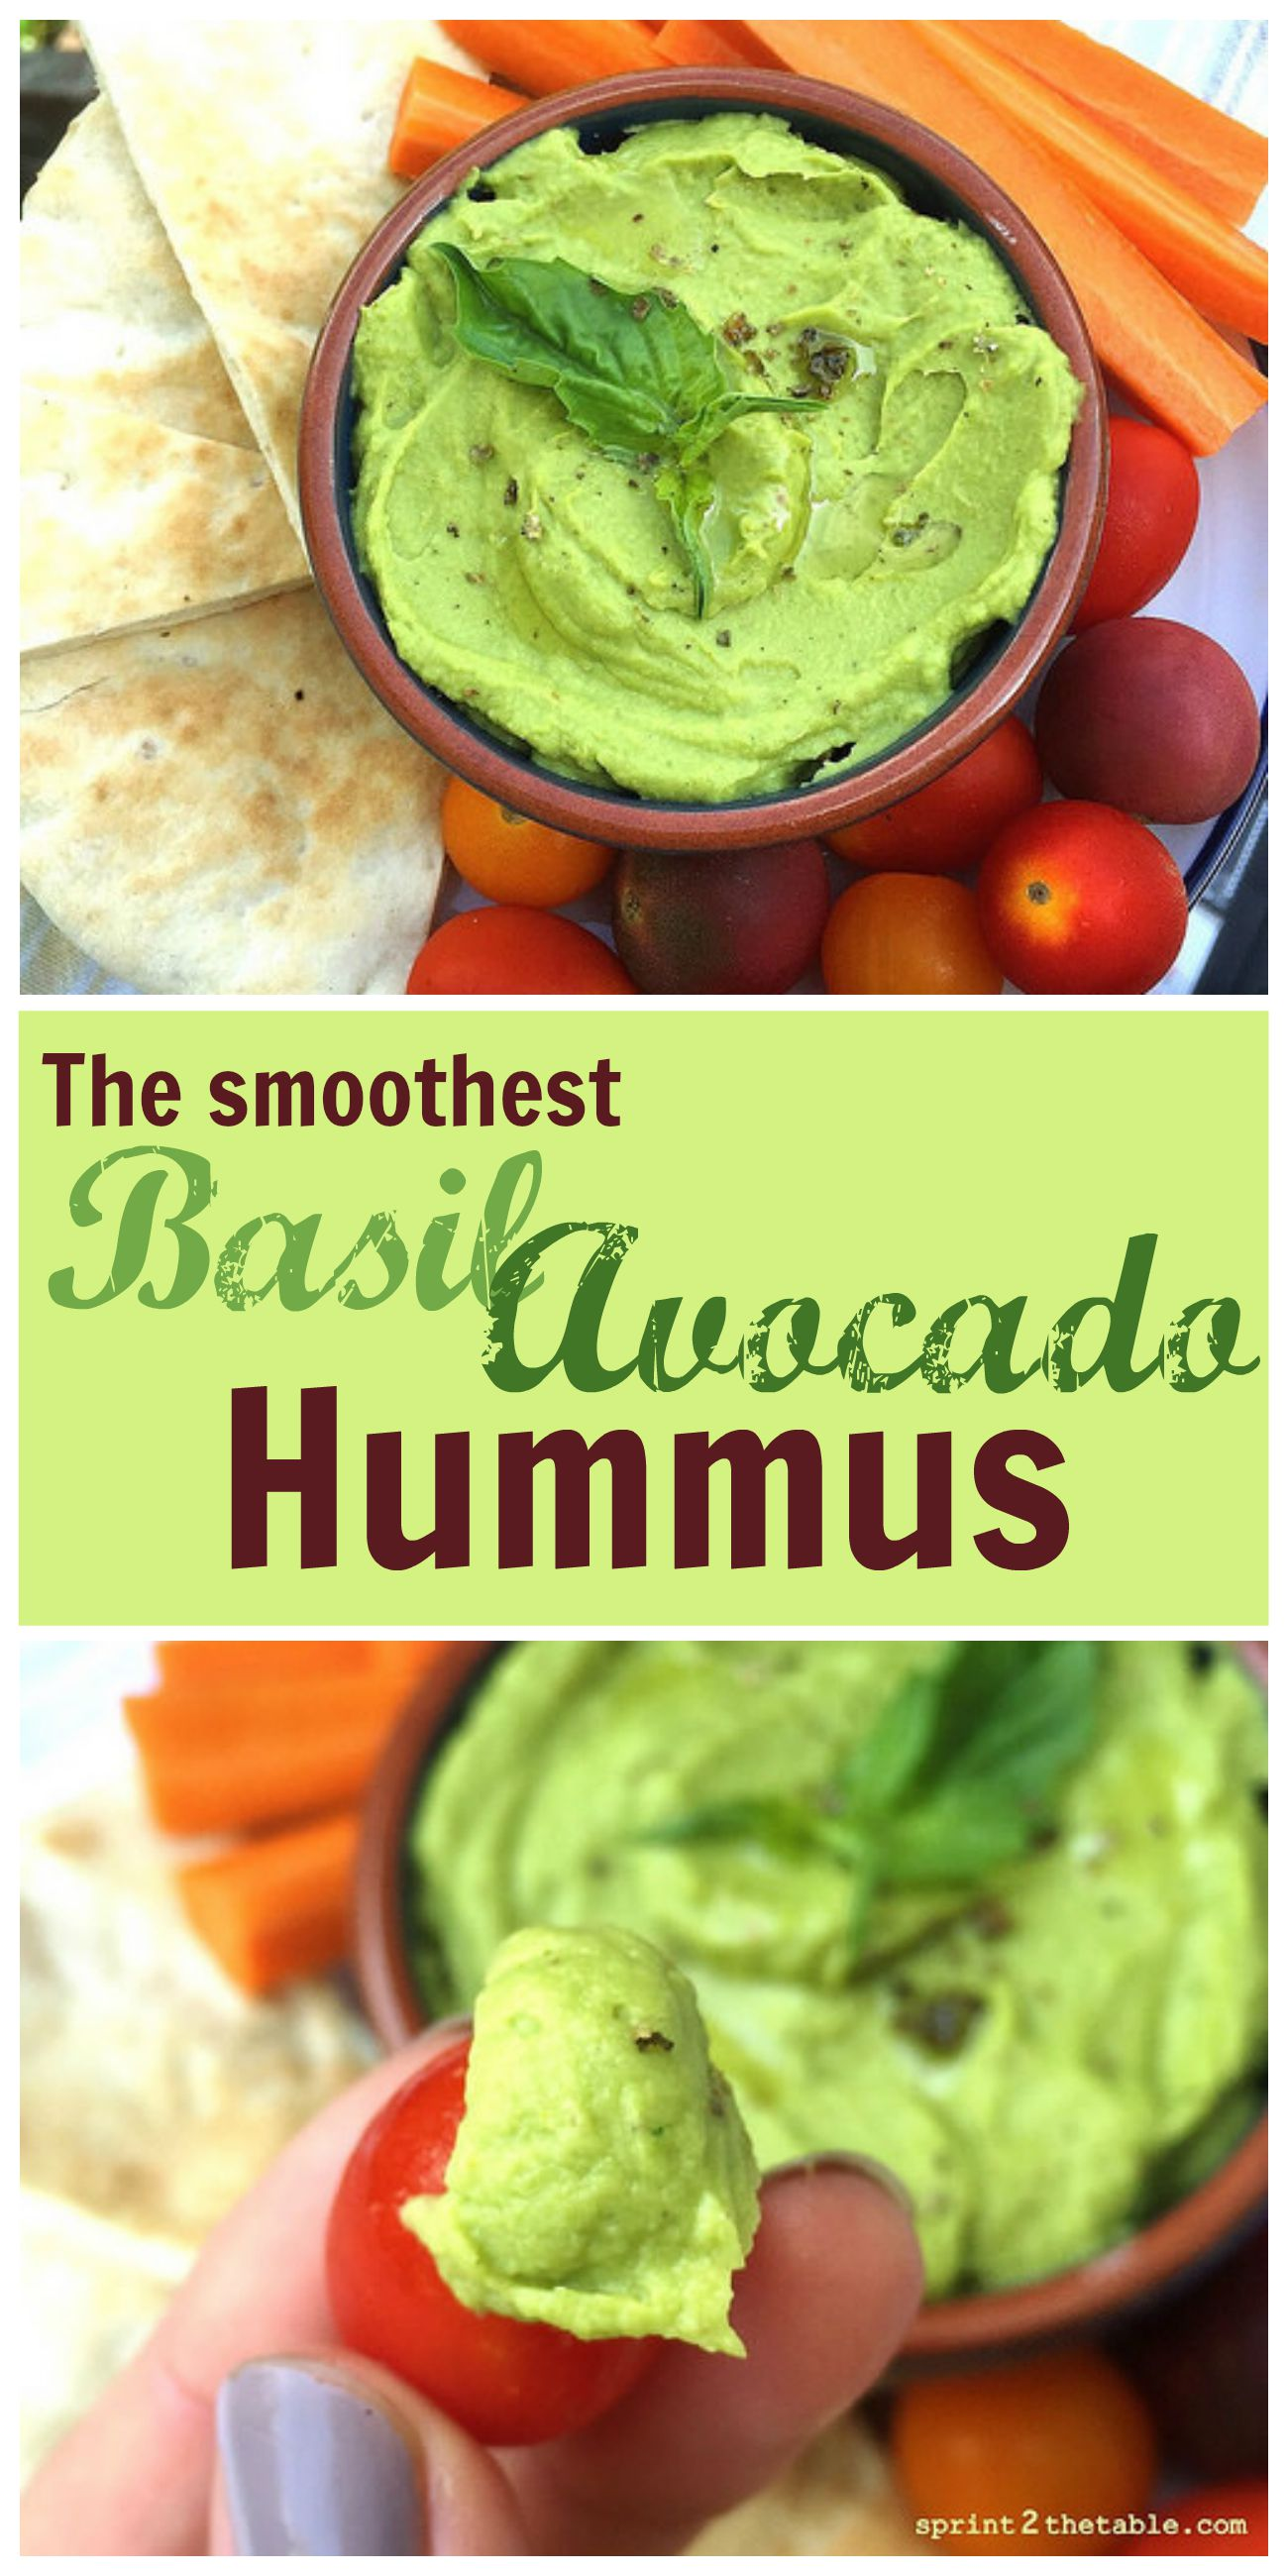 This Basil Avocado Hummus recipe will result in the creamiest homemade hummus you'll ever make! The secret for store-bought creamy hummus is below in this light and refreshing recipe.